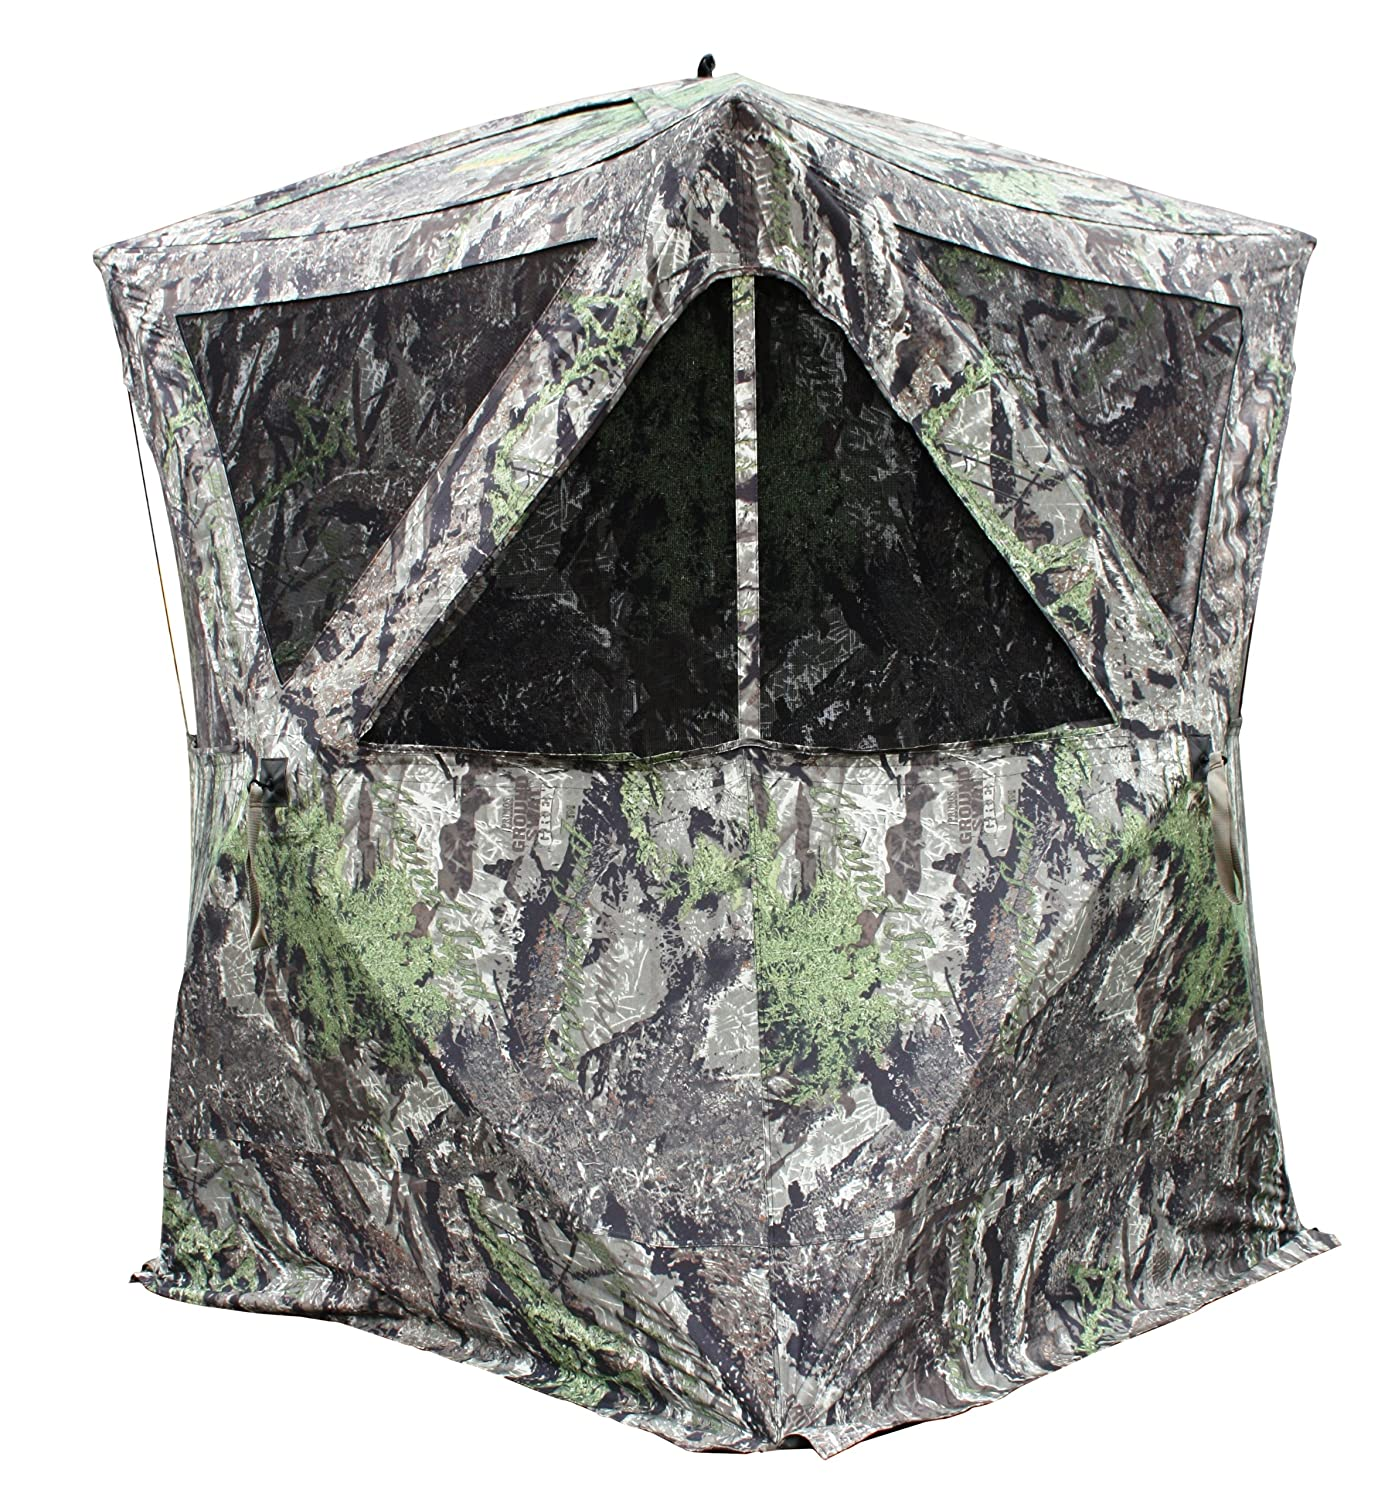 setup a double rapid from accommodate hub easily shack blind to ground design camo the itm hunting enough blinds utilizes swat large for primos bull hunters attack two